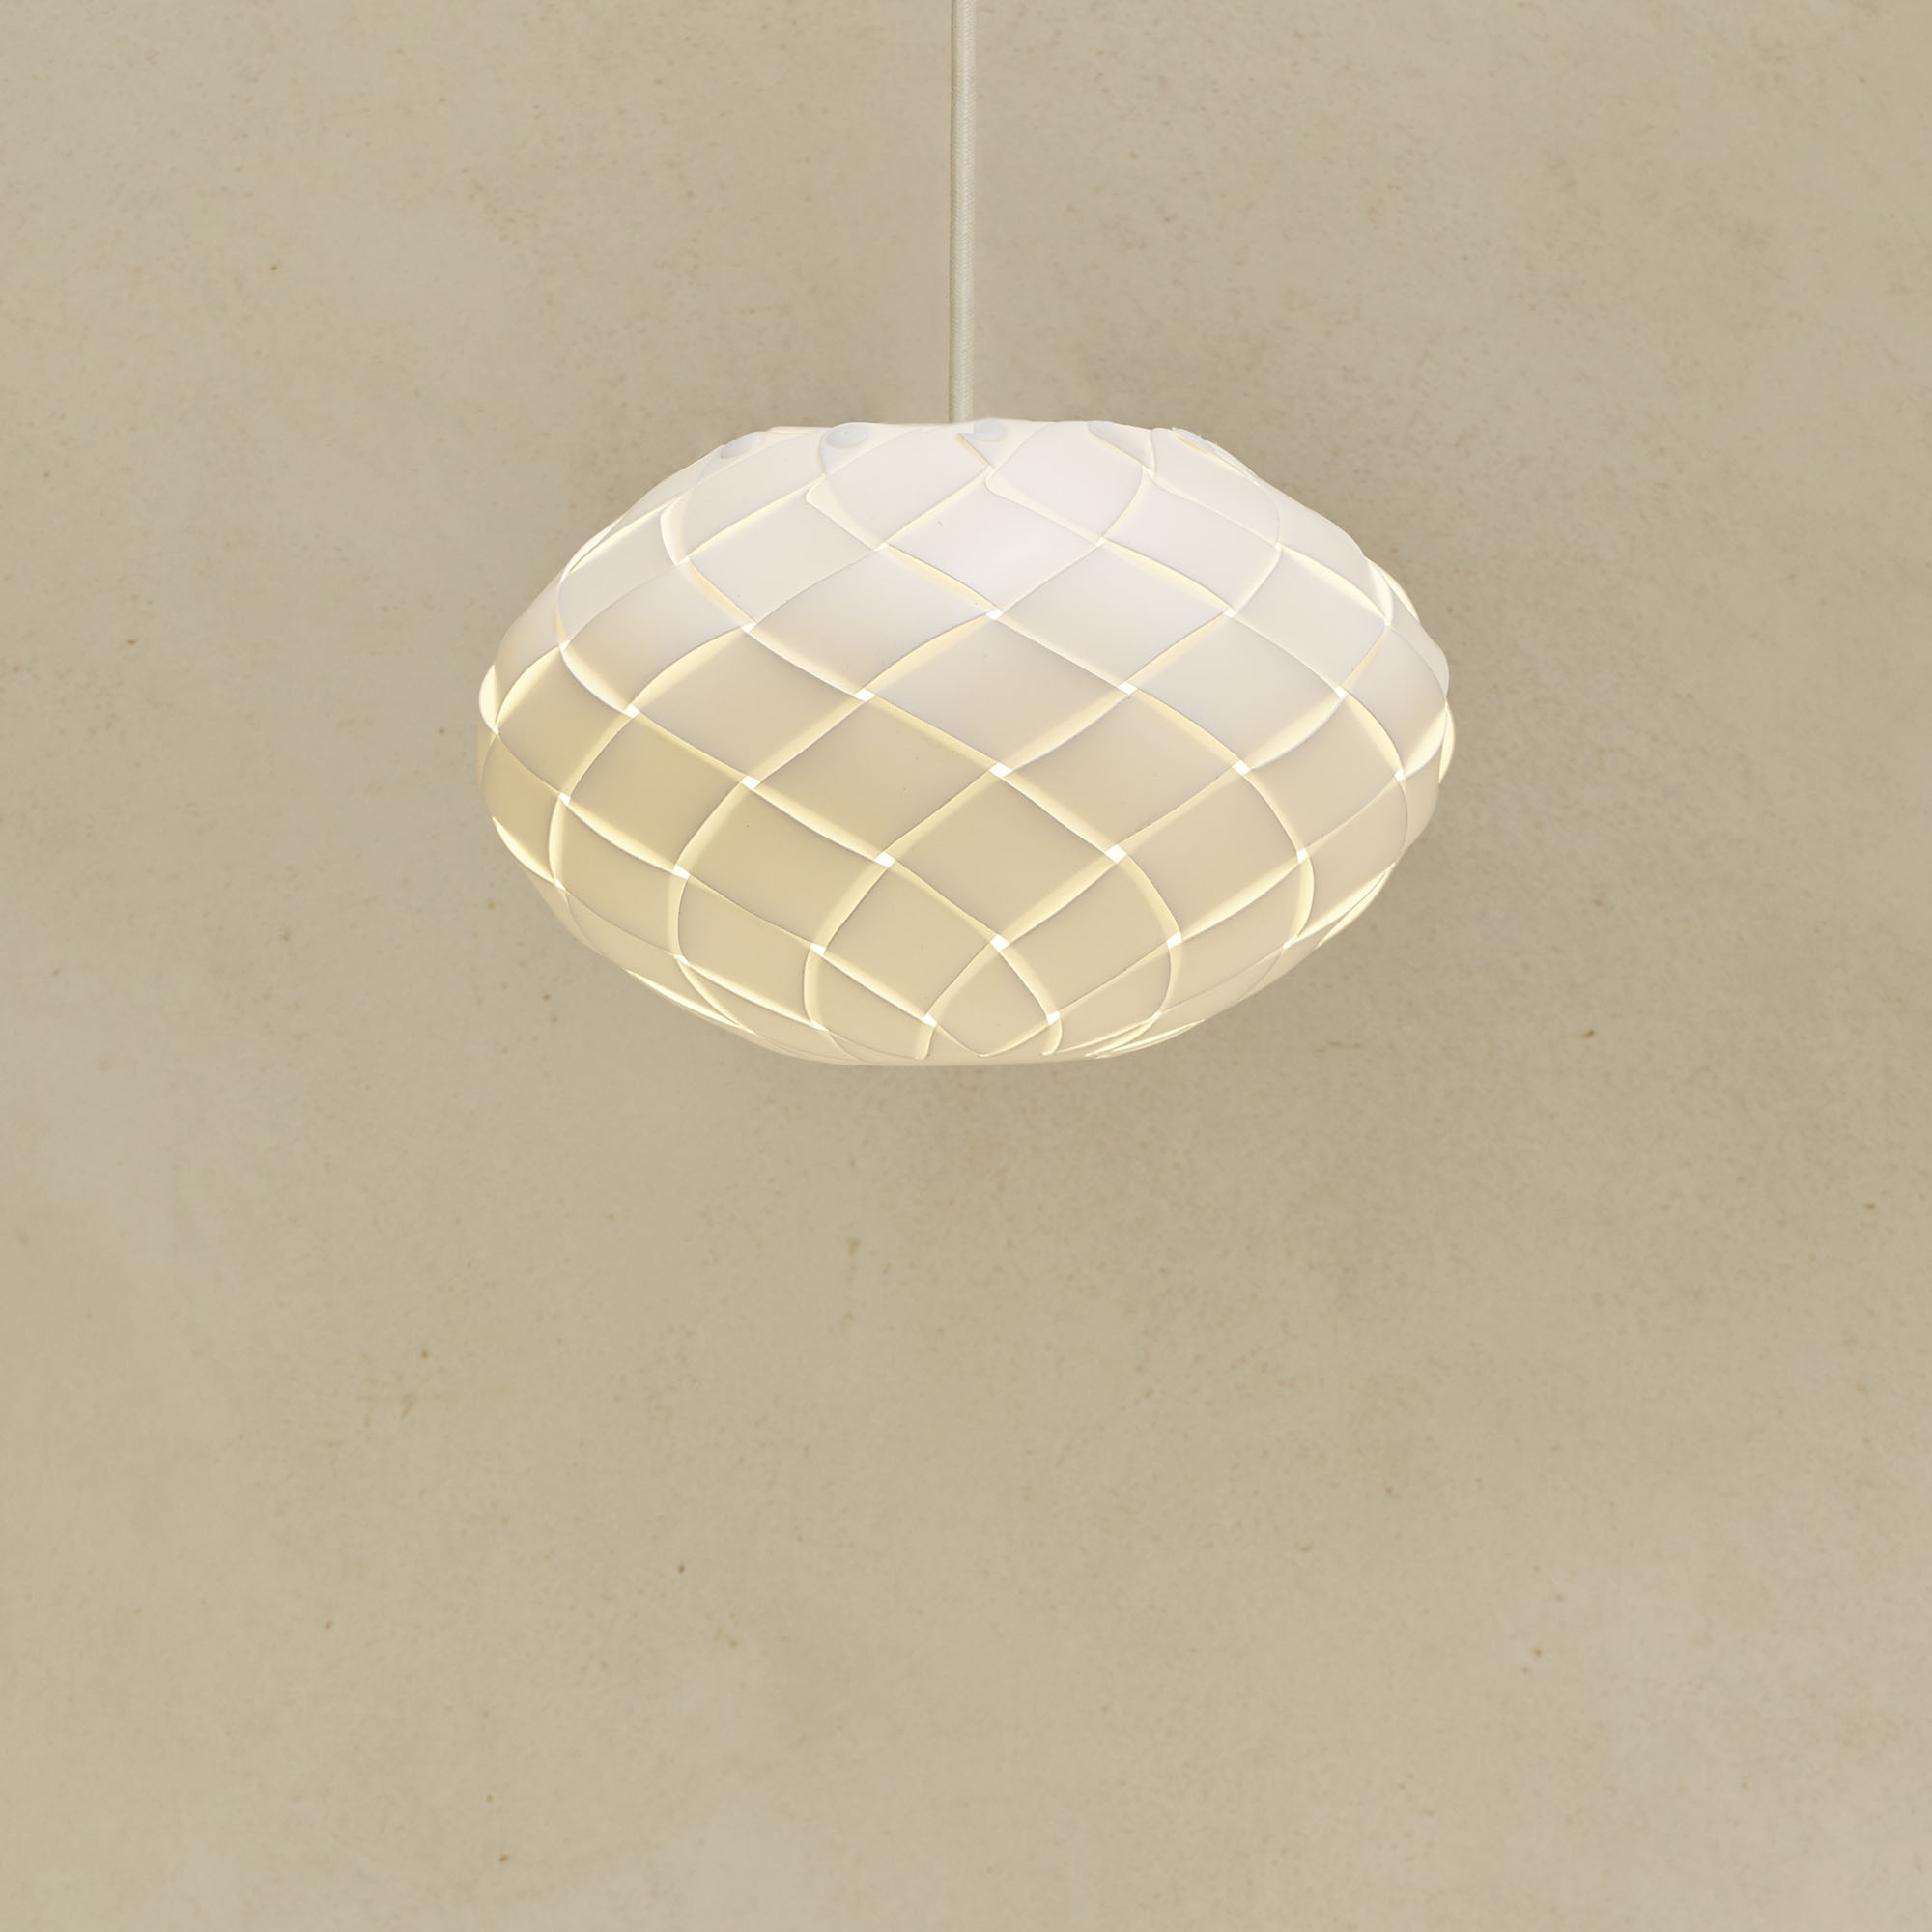 ZONE - An innovative twist on a classic shade